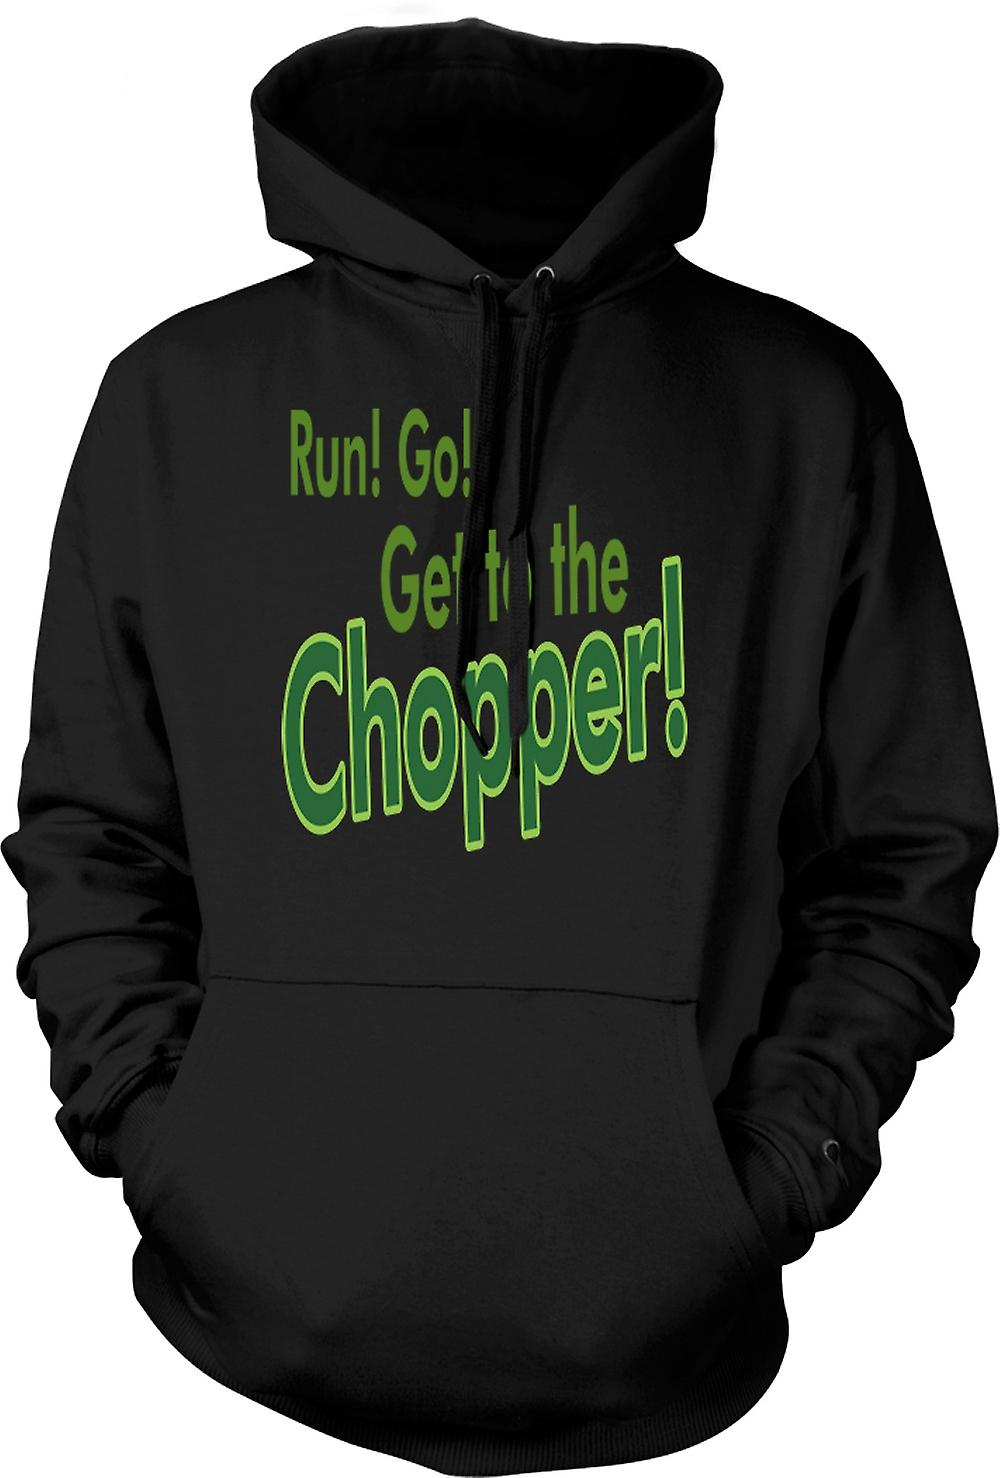 Mens Hoodie - Run! Go! Get To The Chopper! - Funny Quote